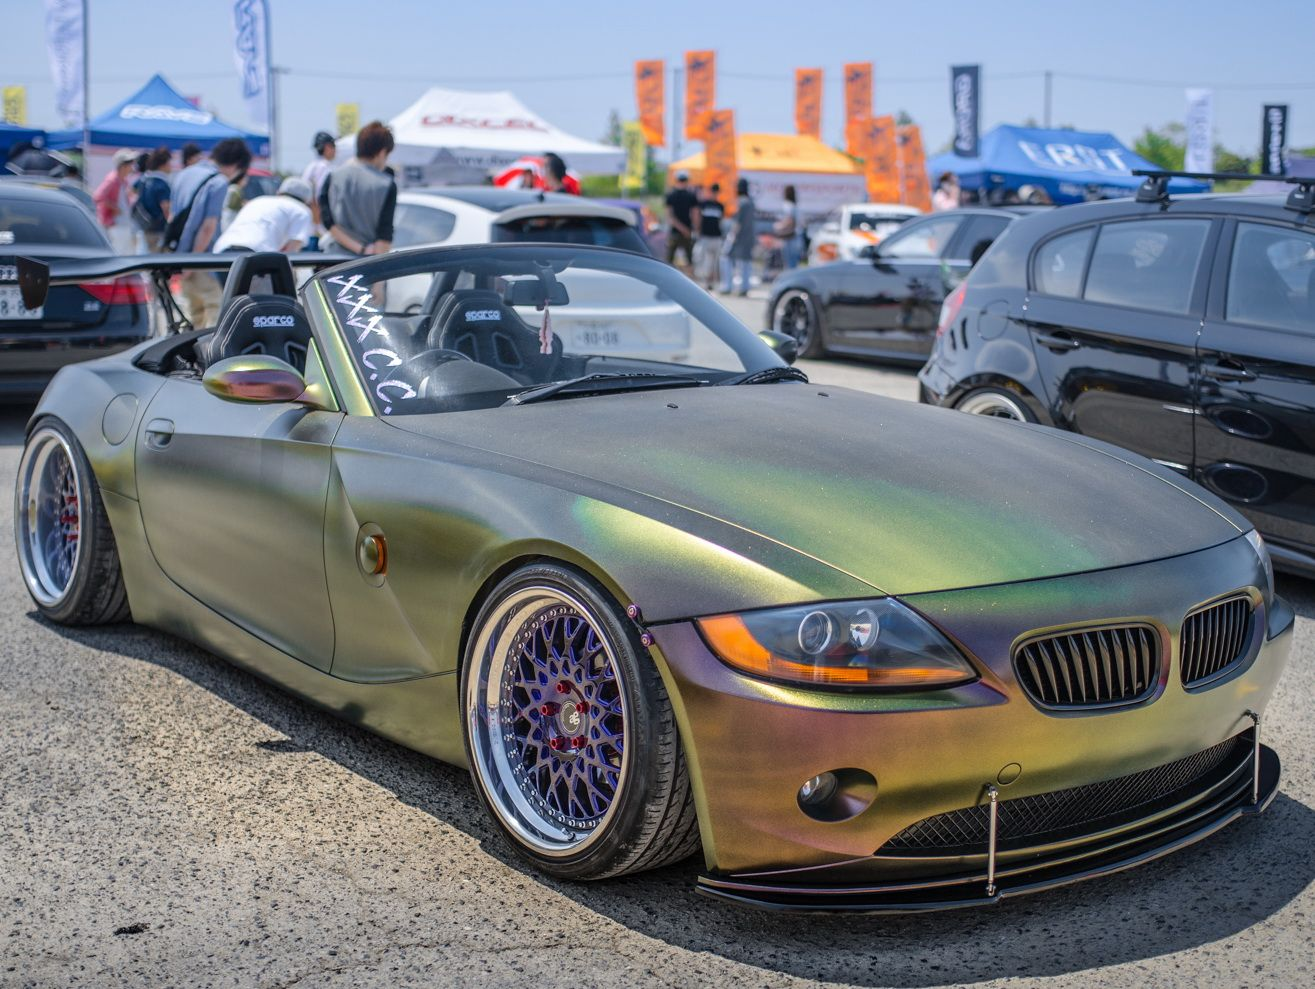 bmw z4 e85 roadster bmw 4ever pinterest bmw z4. Black Bedroom Furniture Sets. Home Design Ideas